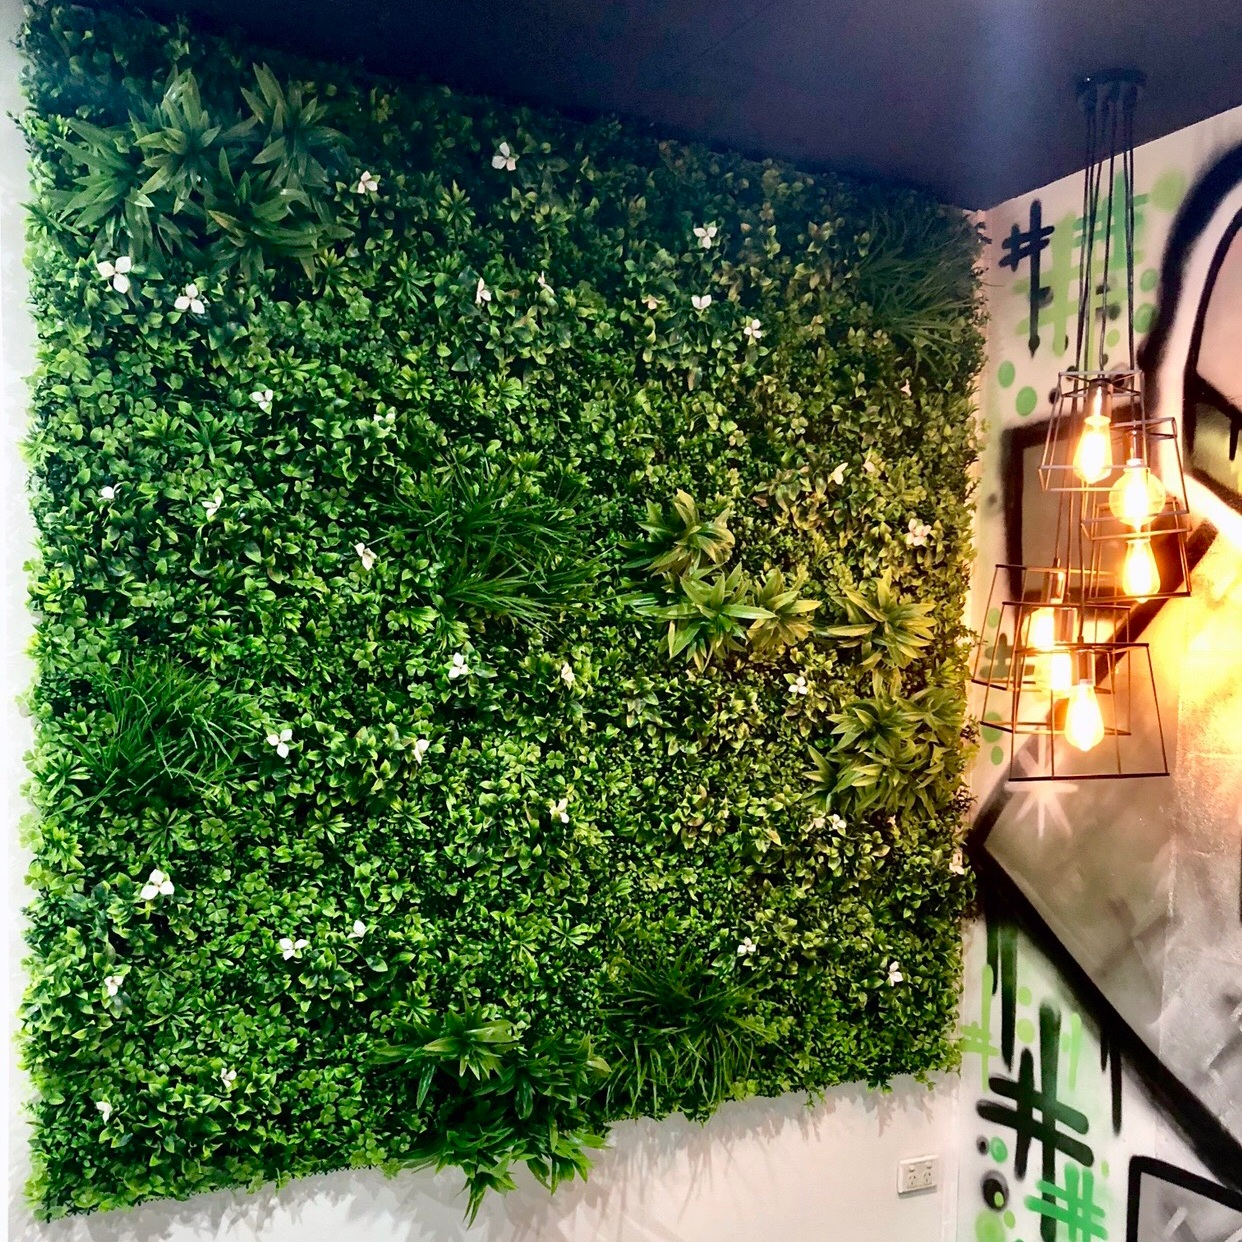 SMI+National+-+Epping+-+Artificial+Plant+Wall.jpg